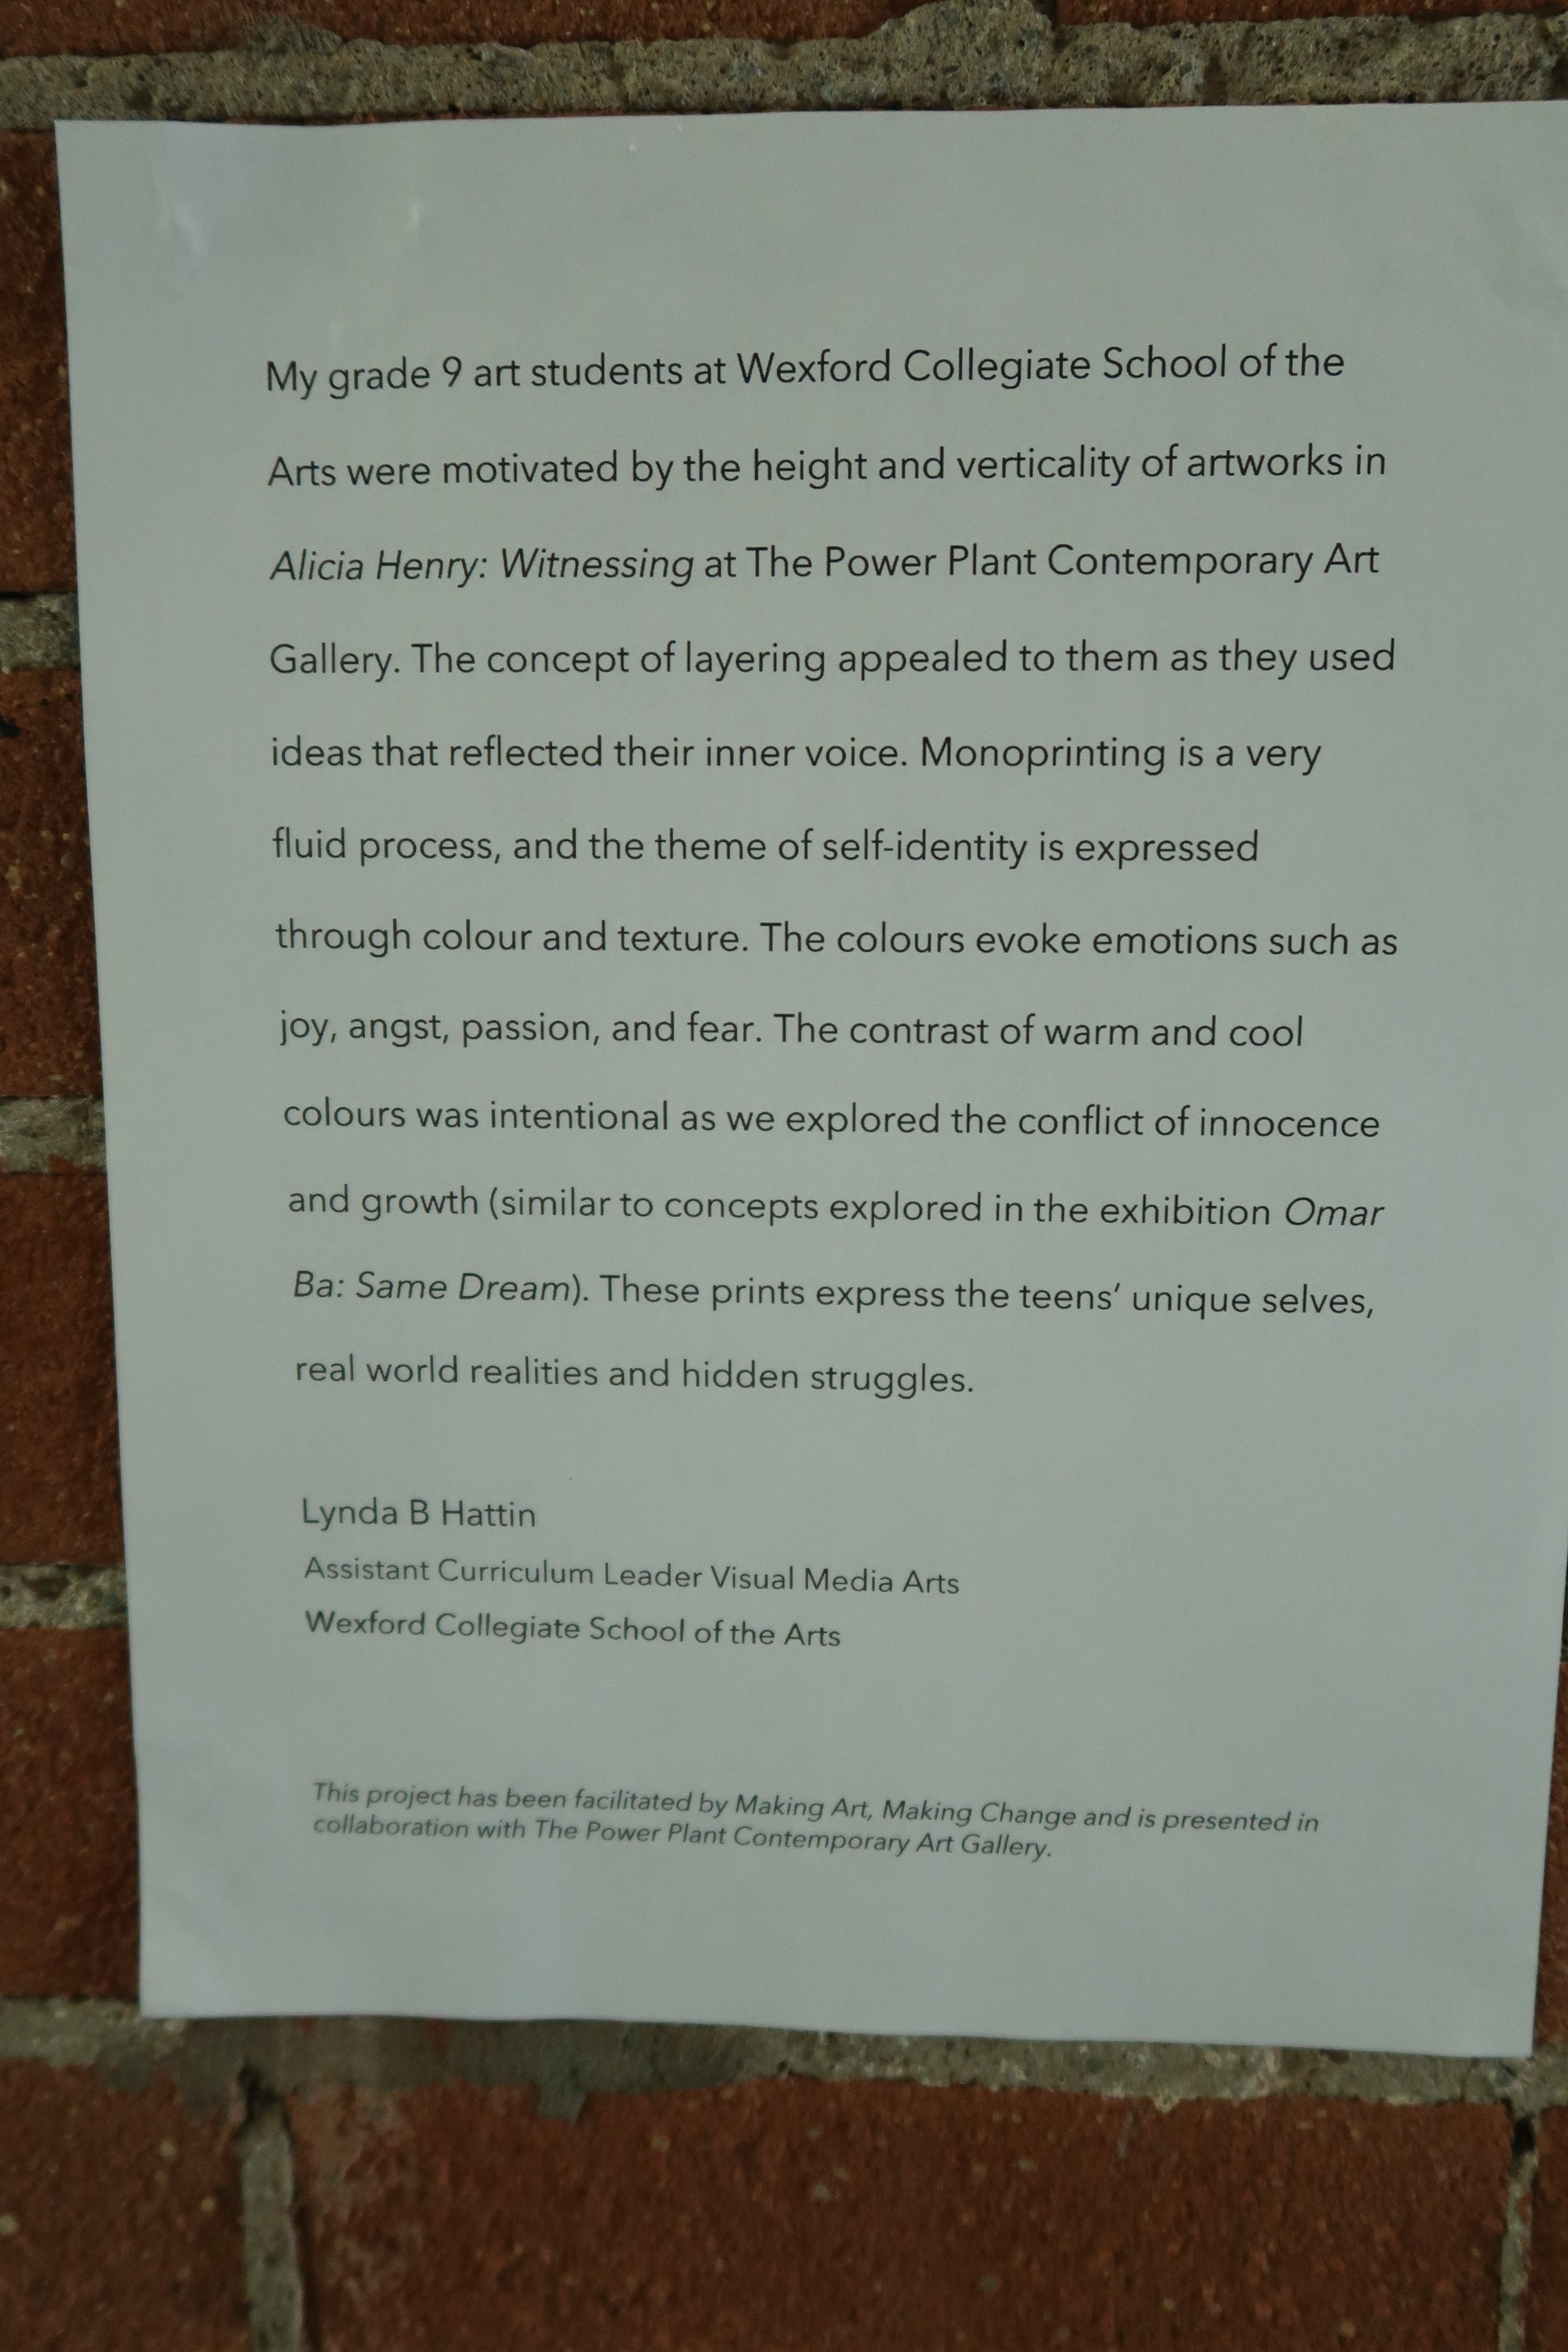 The Power Plant Contemporary Art Gallery - May 4, 2019